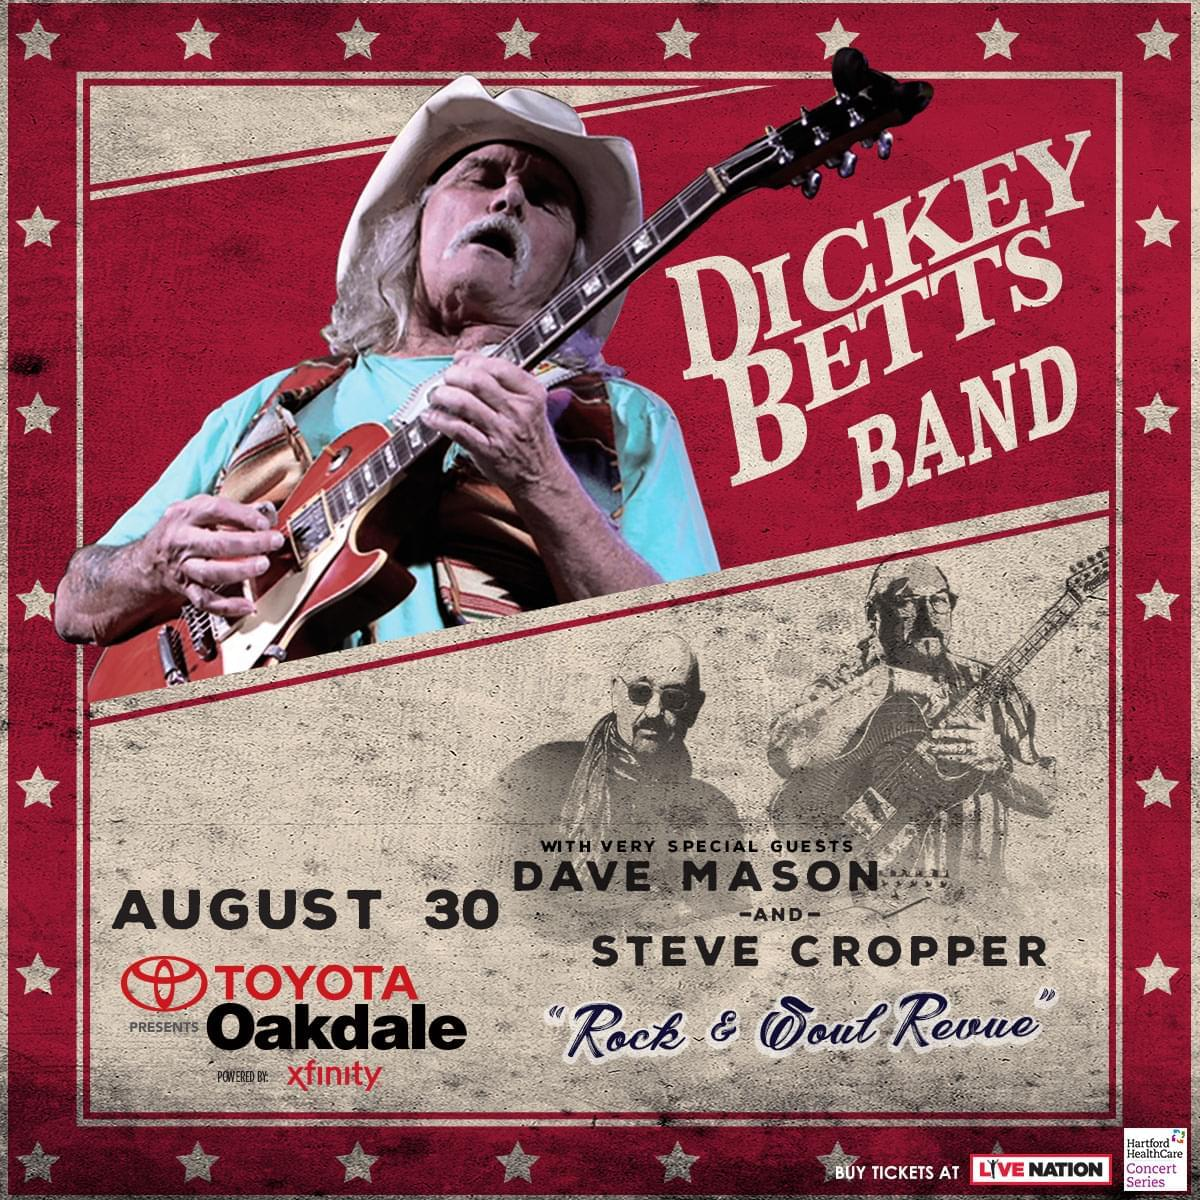 Win tickets to The Dickey Betts Band